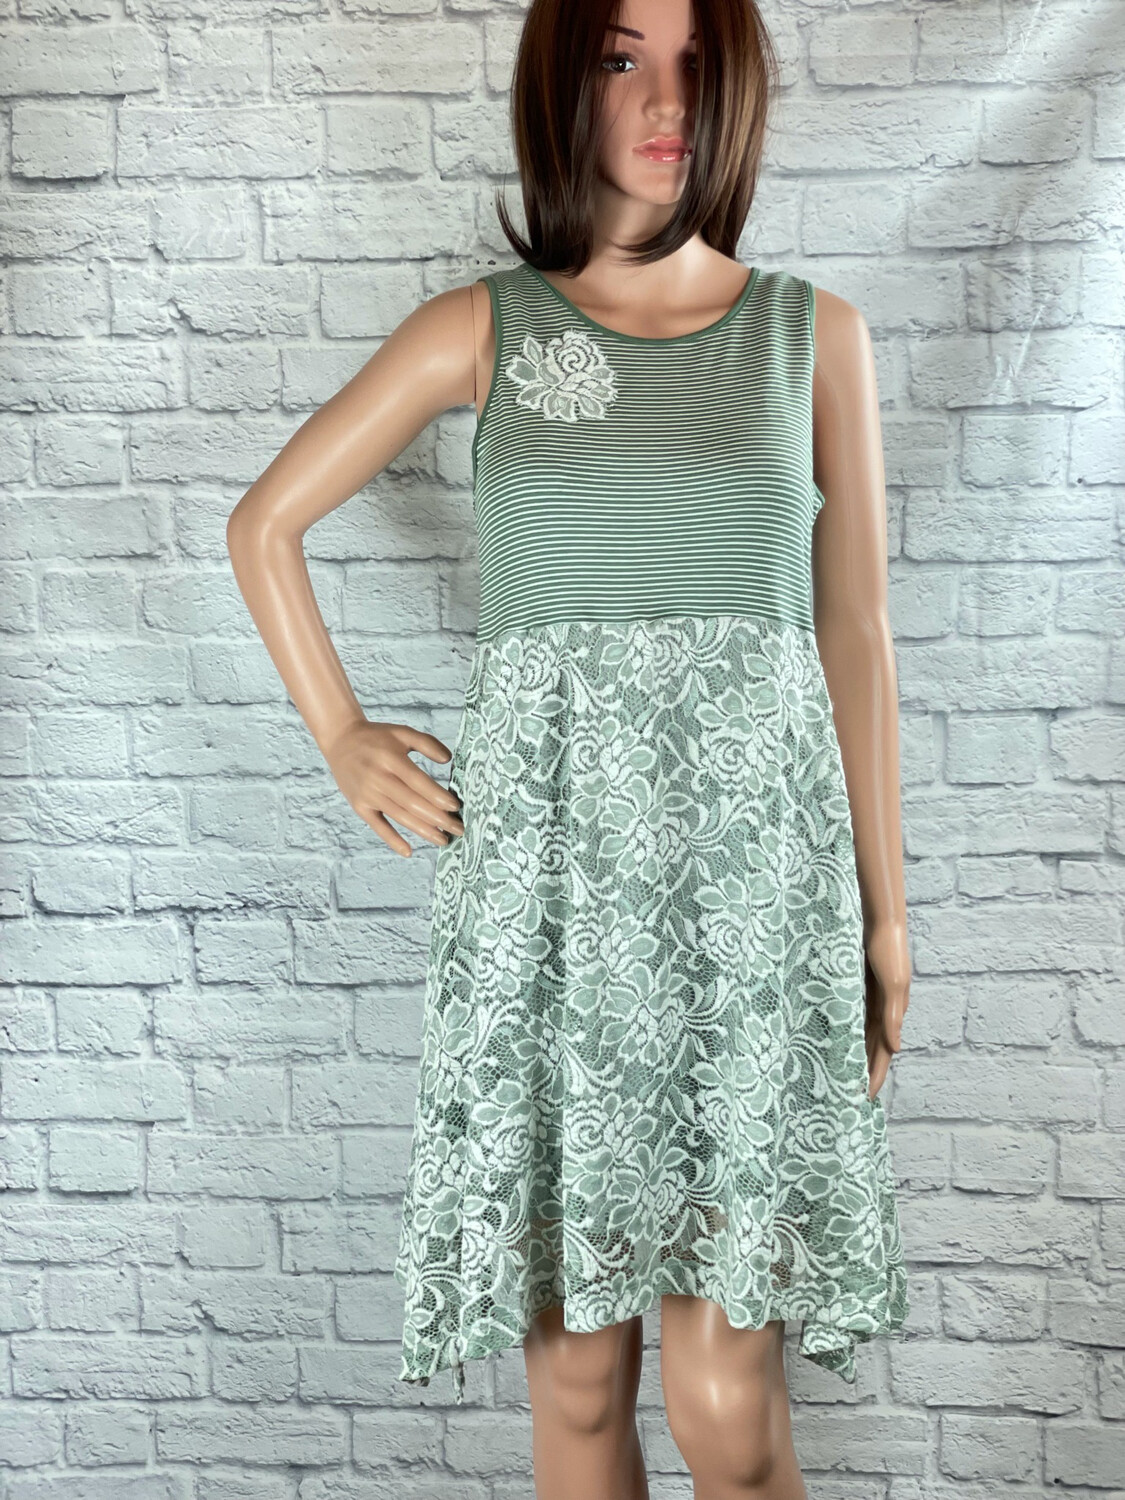 S Threads Upcycled Dress Mint Green Striped Floral Lace Size M/L/XL